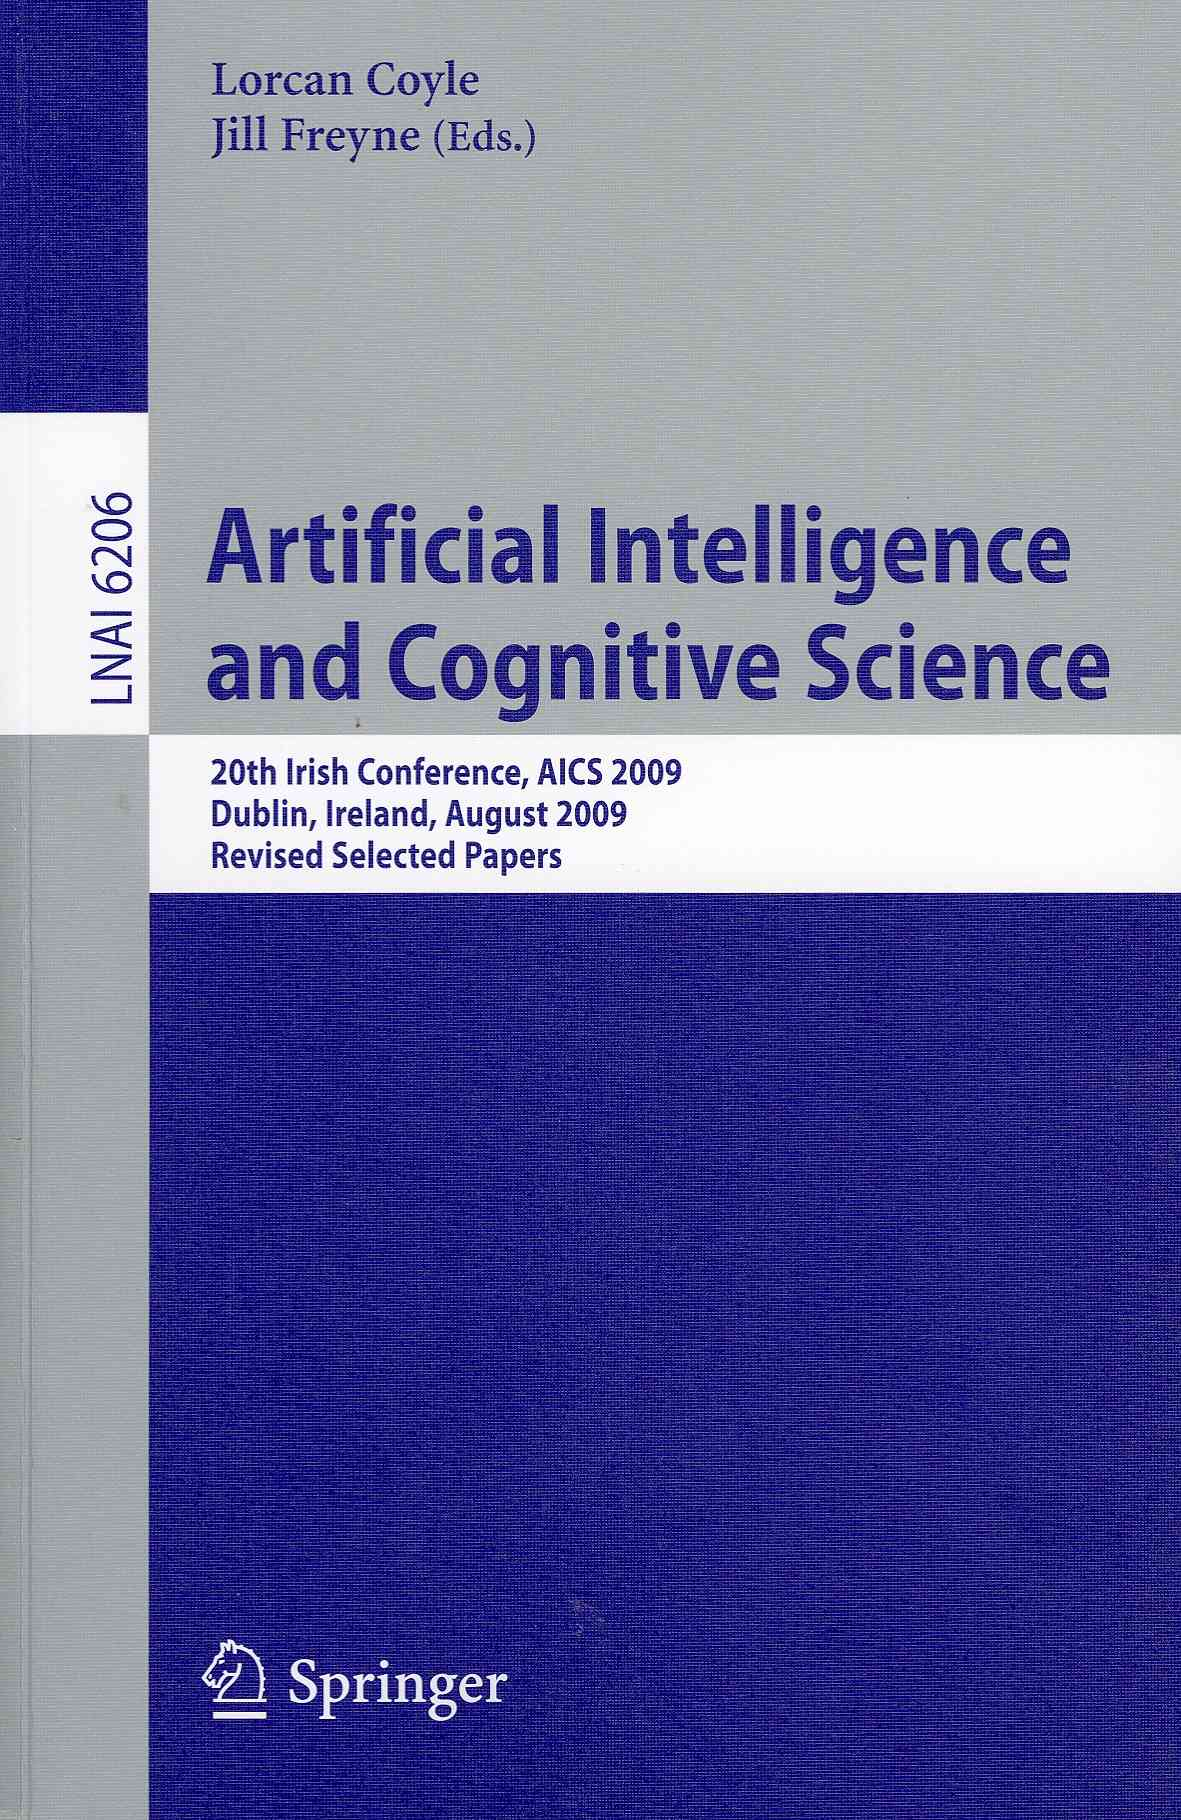 Artificial Intelligence and Cognitive Science By Coyle, Lorcan (EDT)